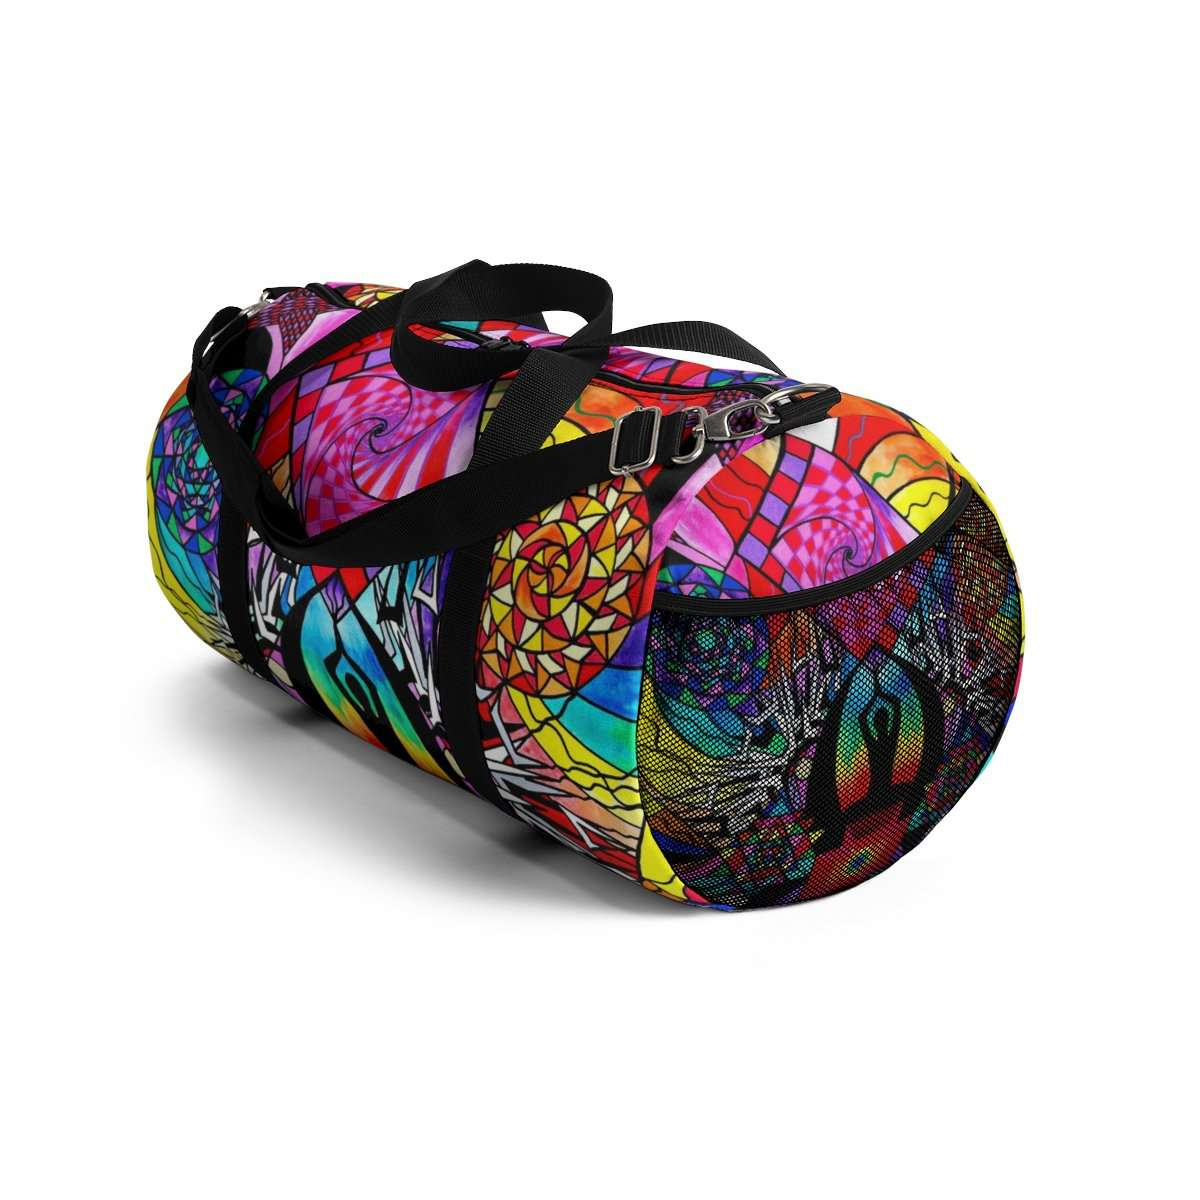 Meditation Aid - Duffle Bag